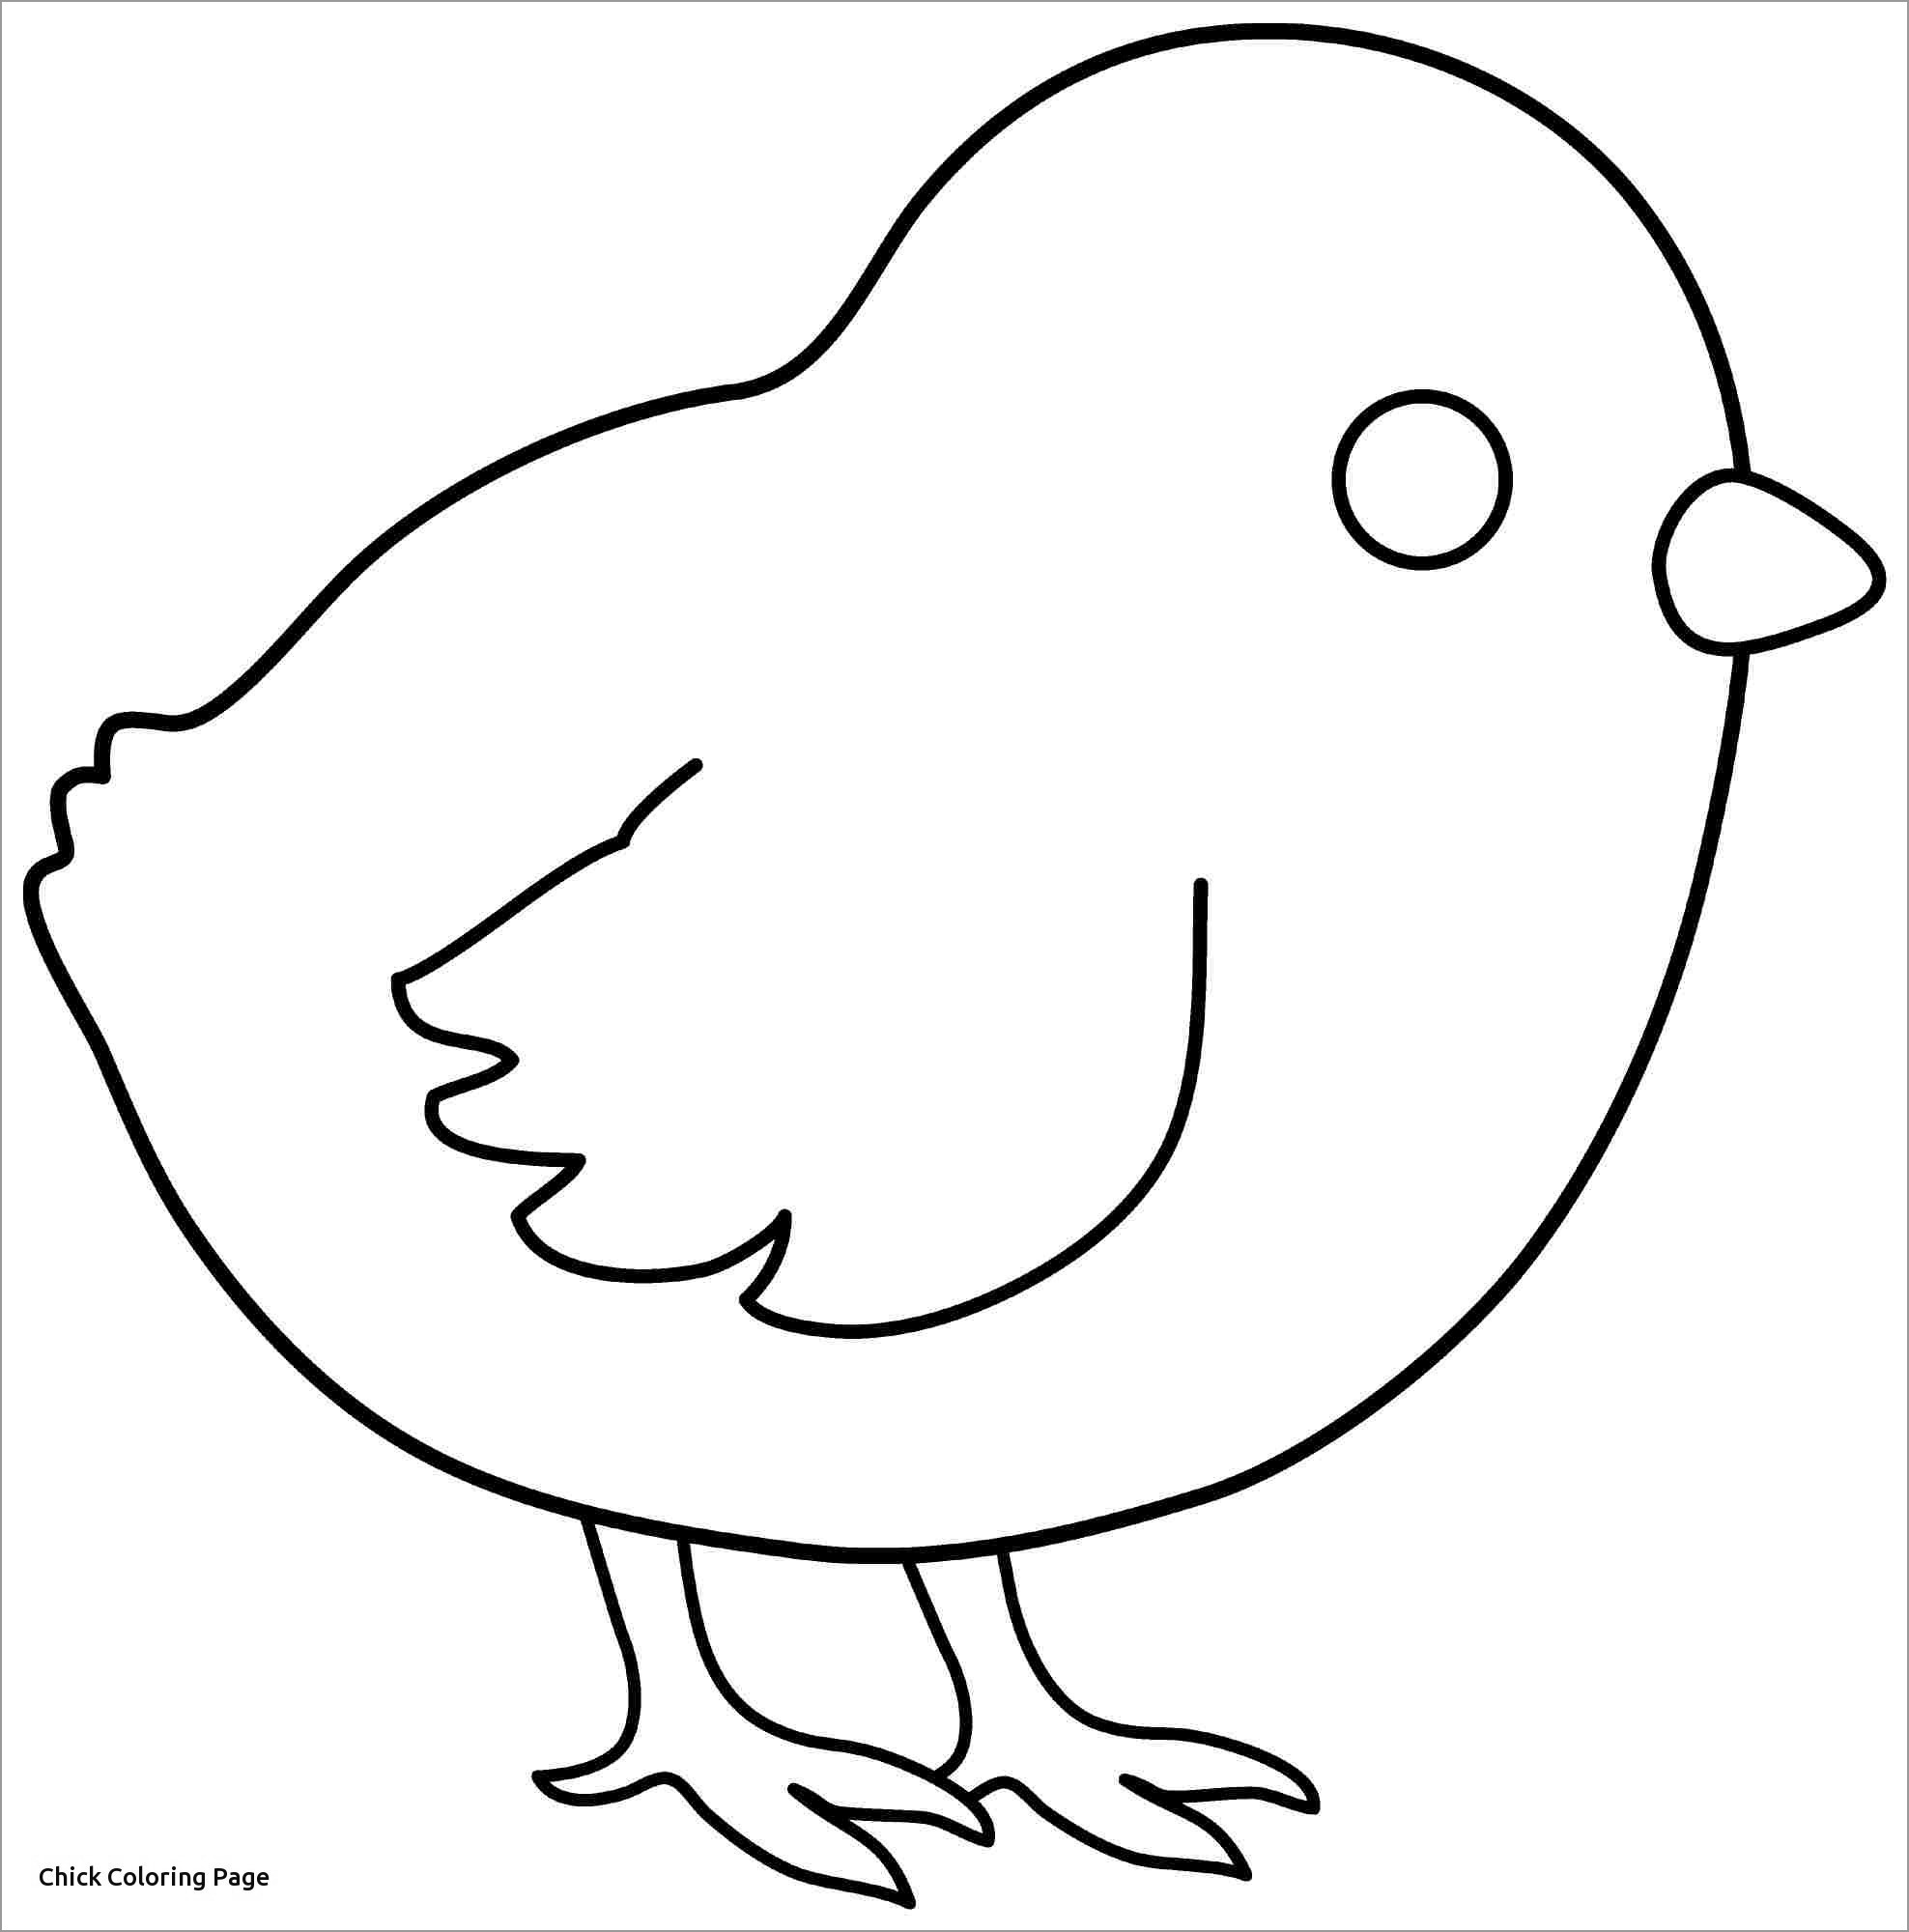 Baby Chick Coloring Pages - GetColoringPages.com | 2000x1976